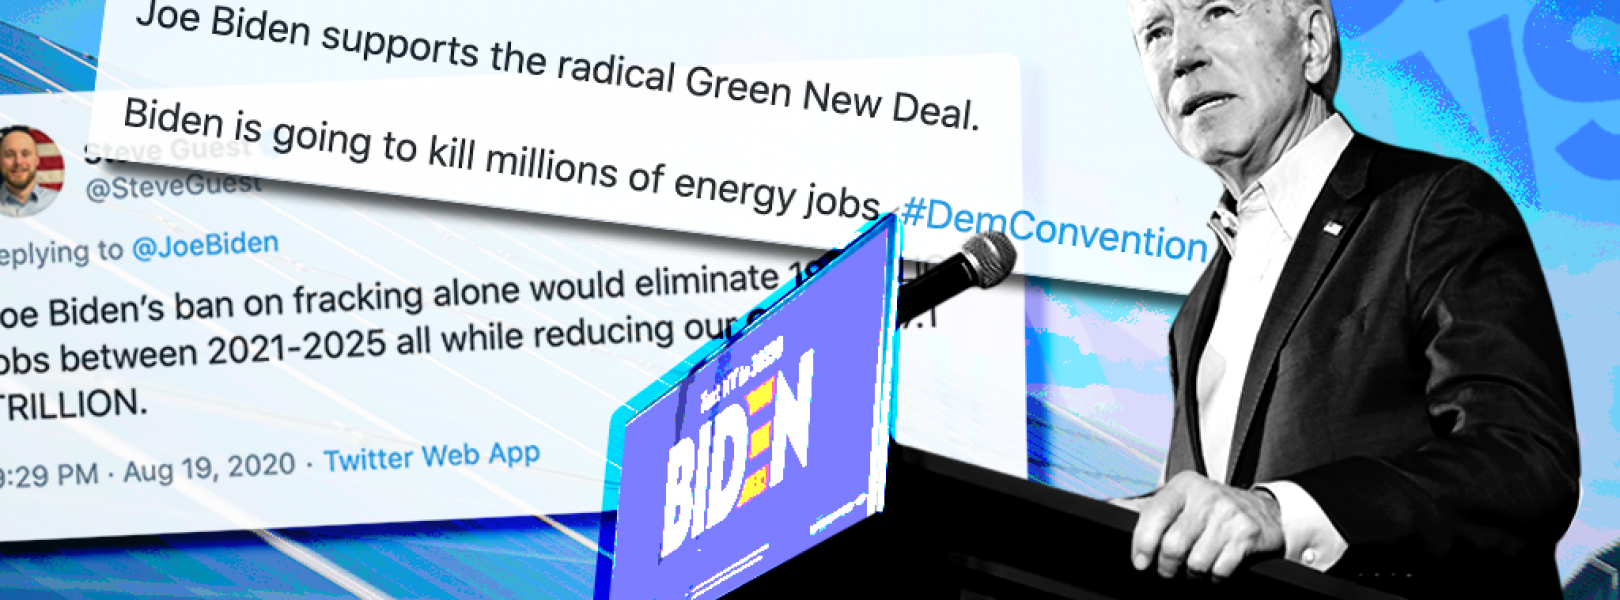 Right-wing media lie about Biden's climate plan